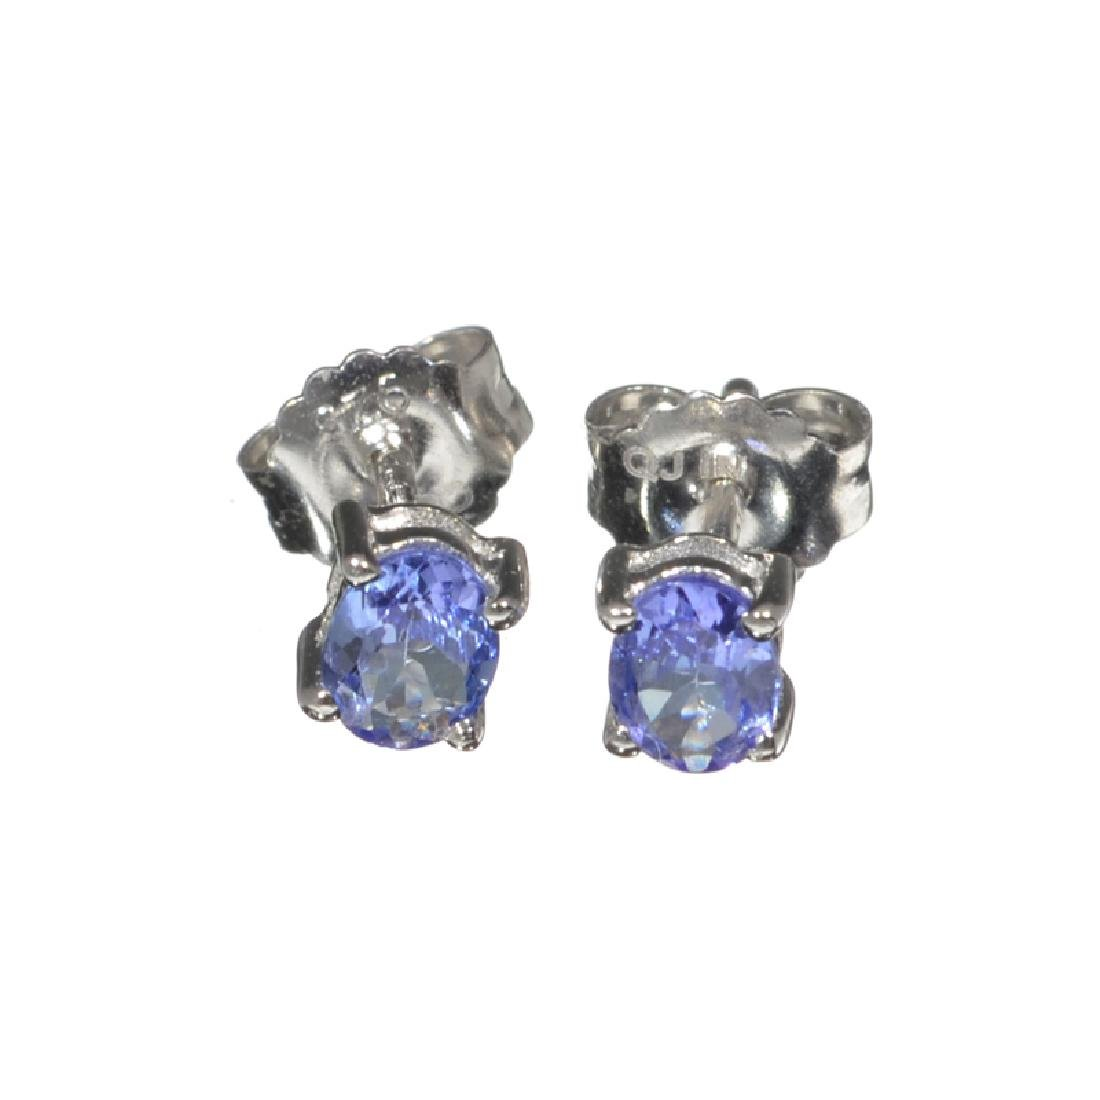 APP: 0.7k Fine Jewelry 0.76CT Oval Cut Tanzanite And